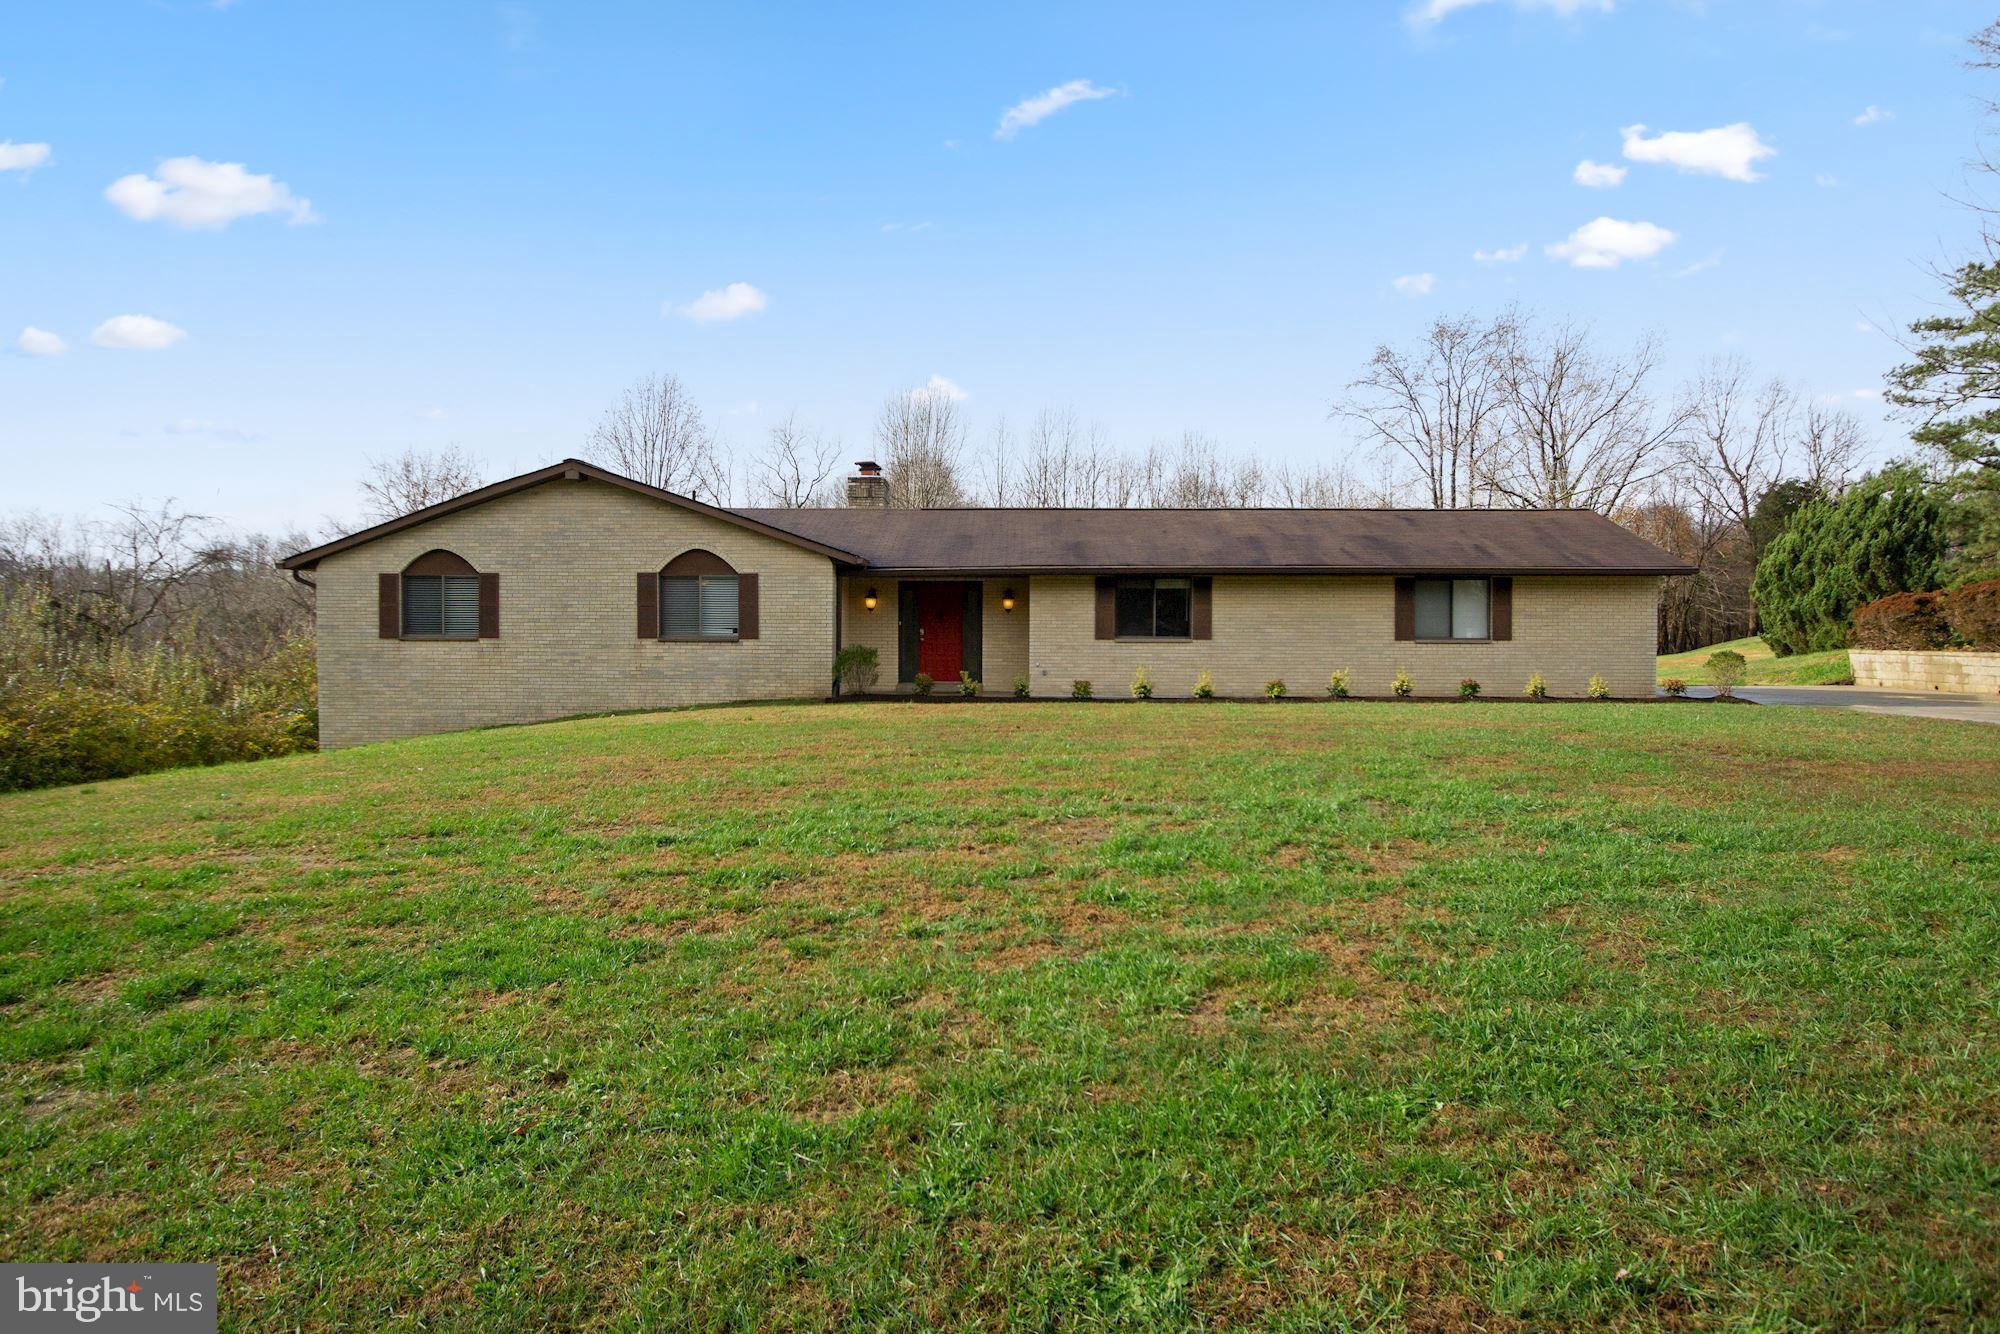 Immaculate updated Rambler 3-4 large BR w 3 full spacious baths on 1 acre lot. MBR with full ensuite